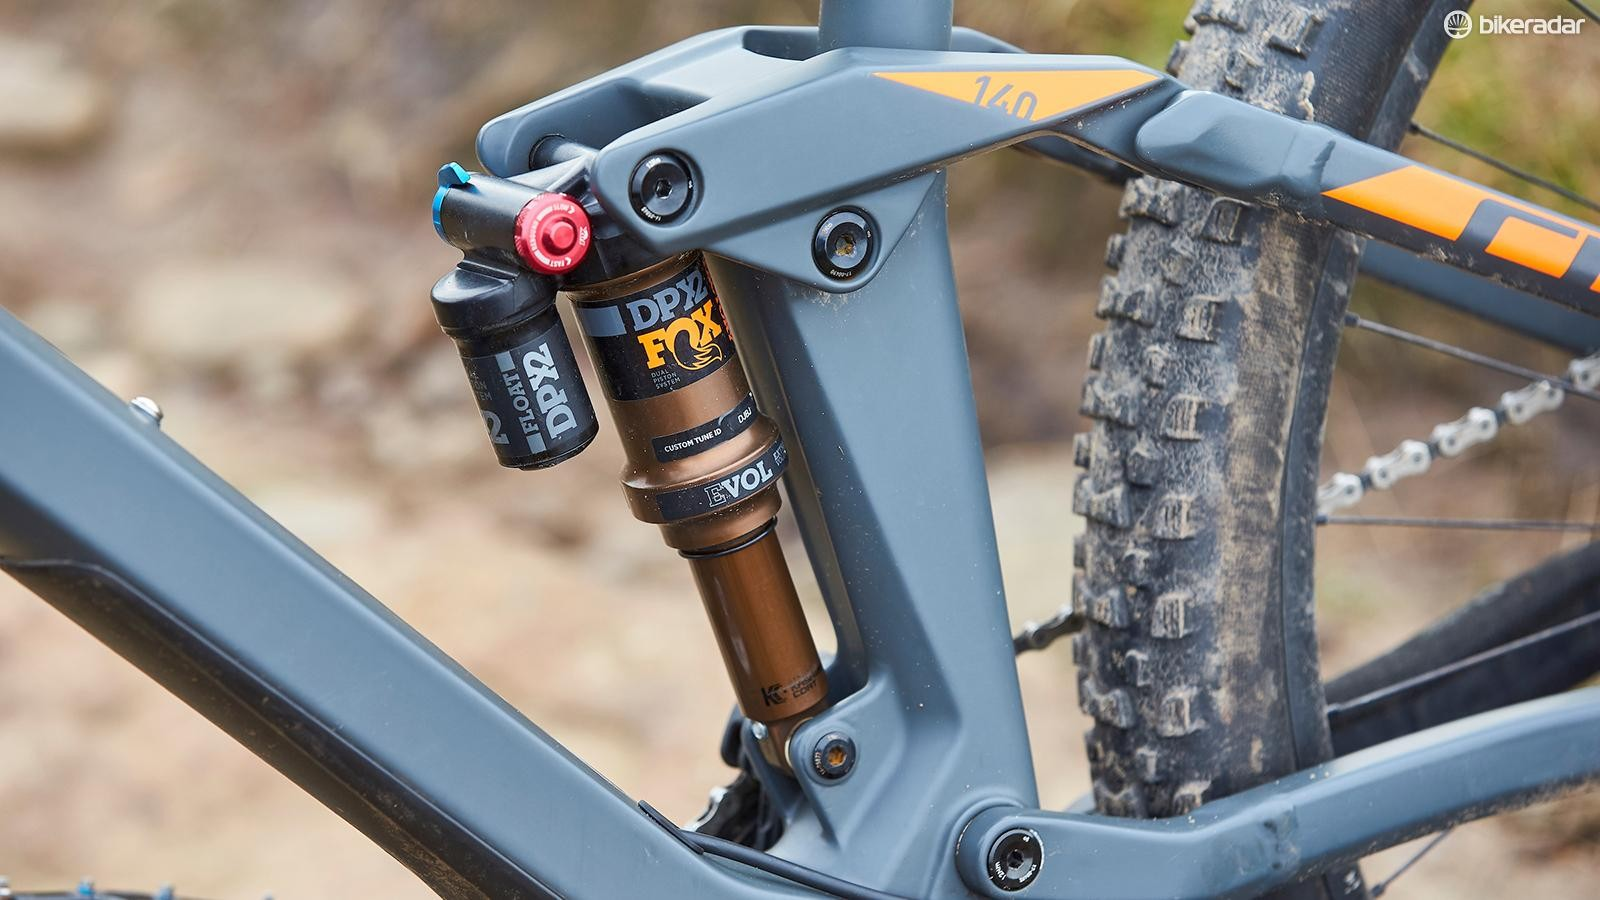 A Fox DPX2 shock gets the full Factory treatment